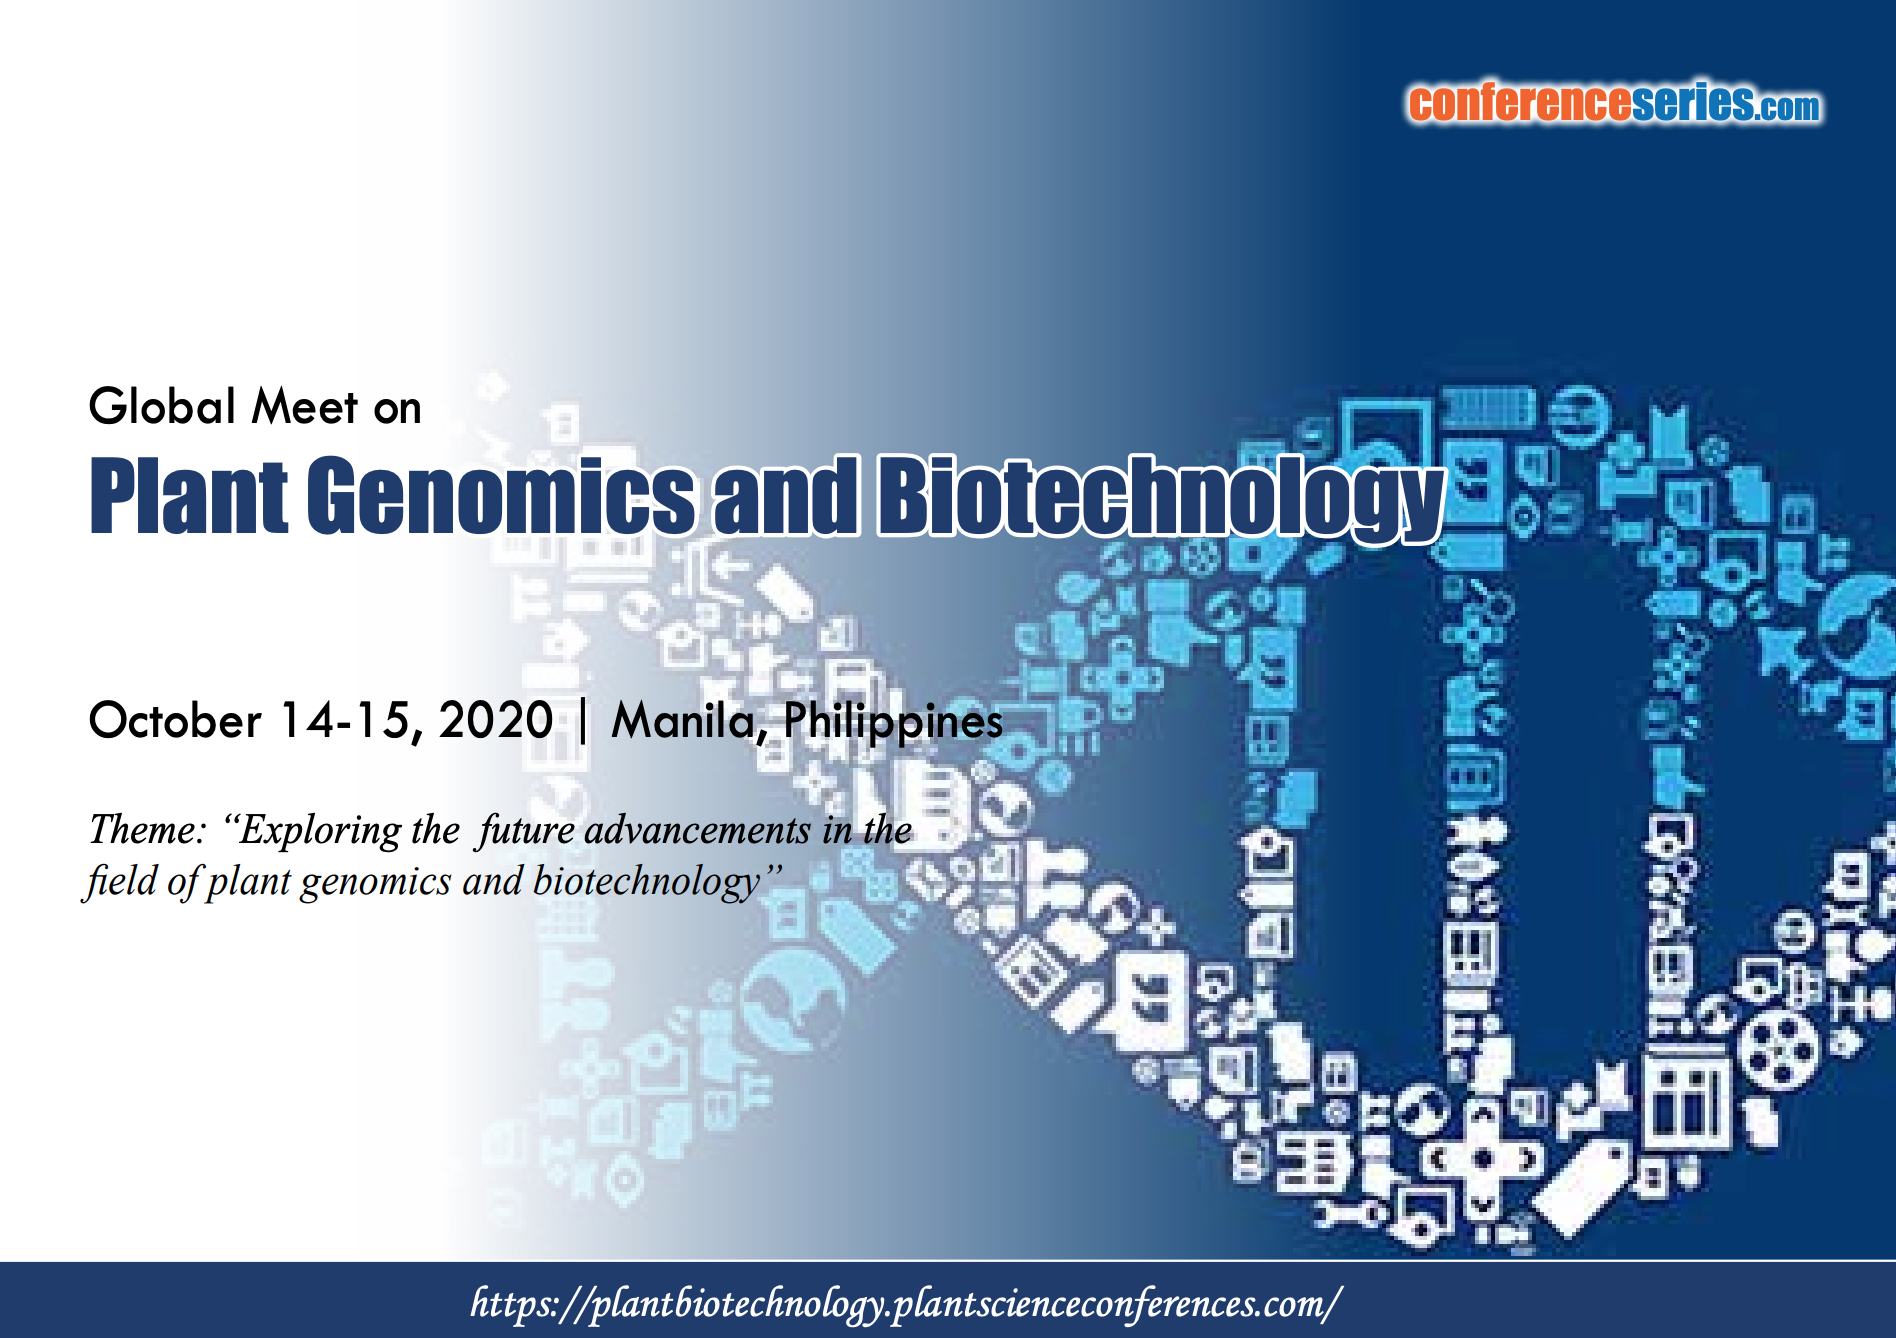 Global Meet on Plant Genomics and Biotechnology, Manila, Philippines